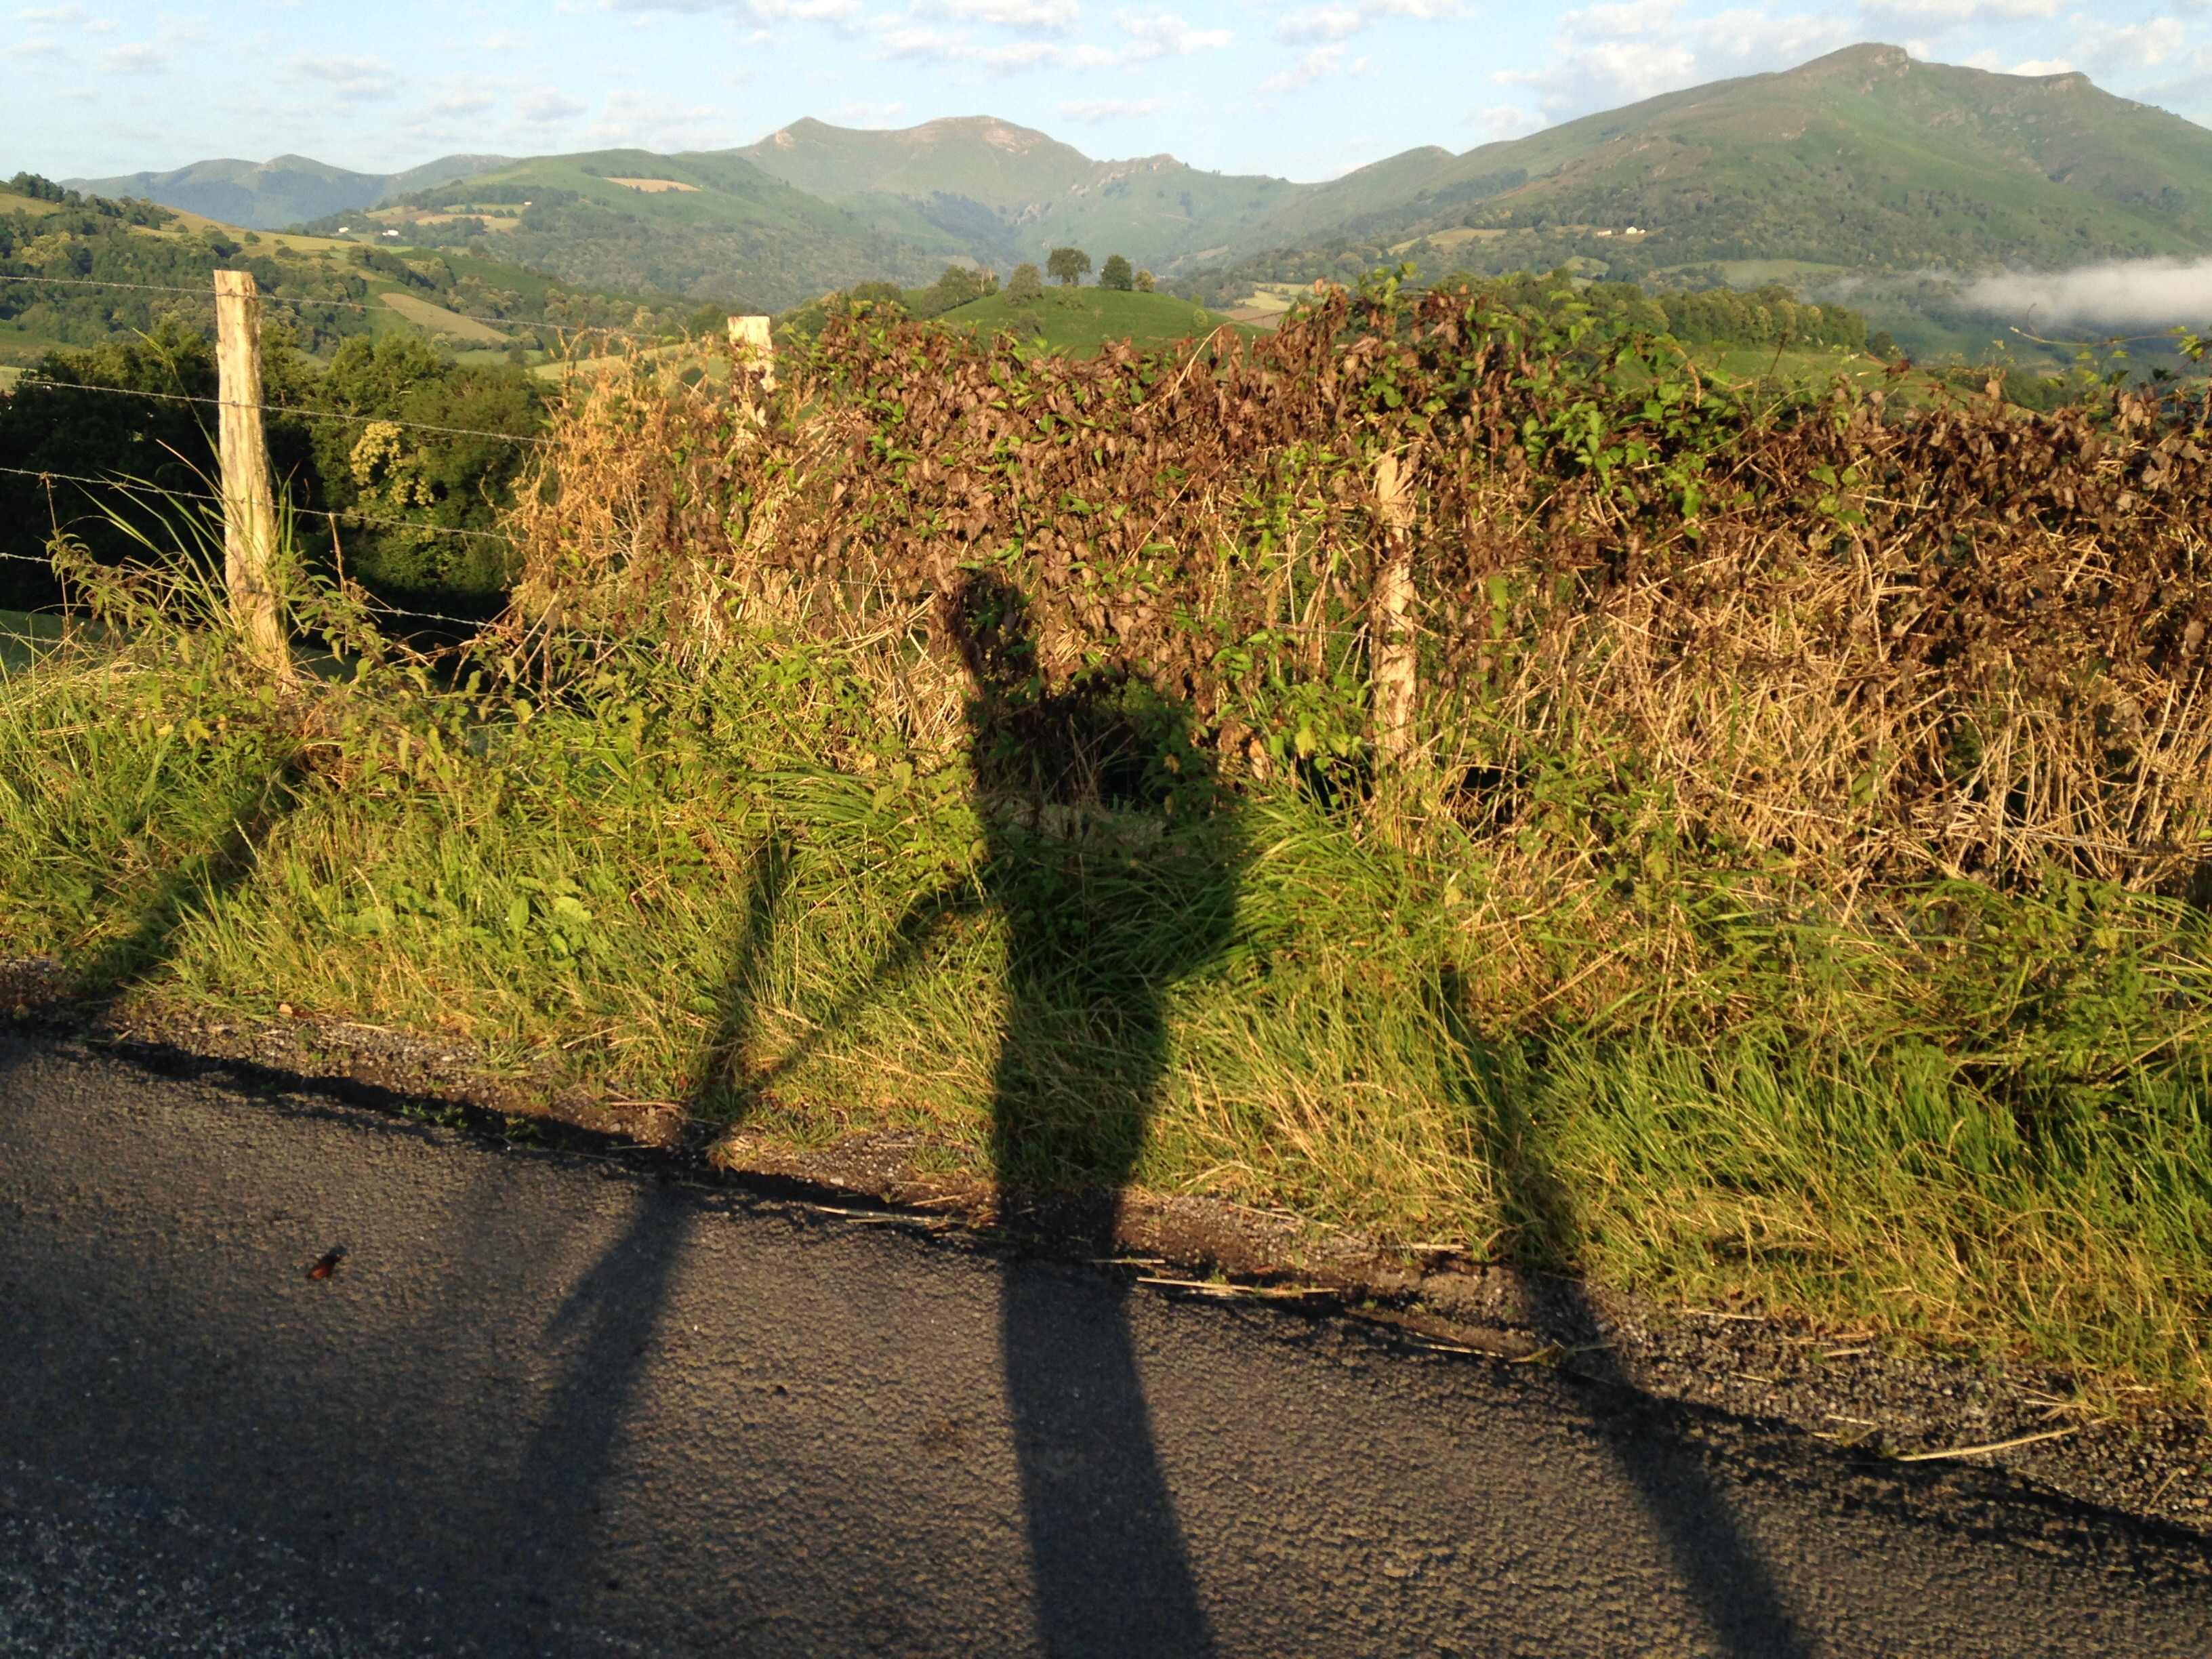 Shadow on the Camino de Santiago